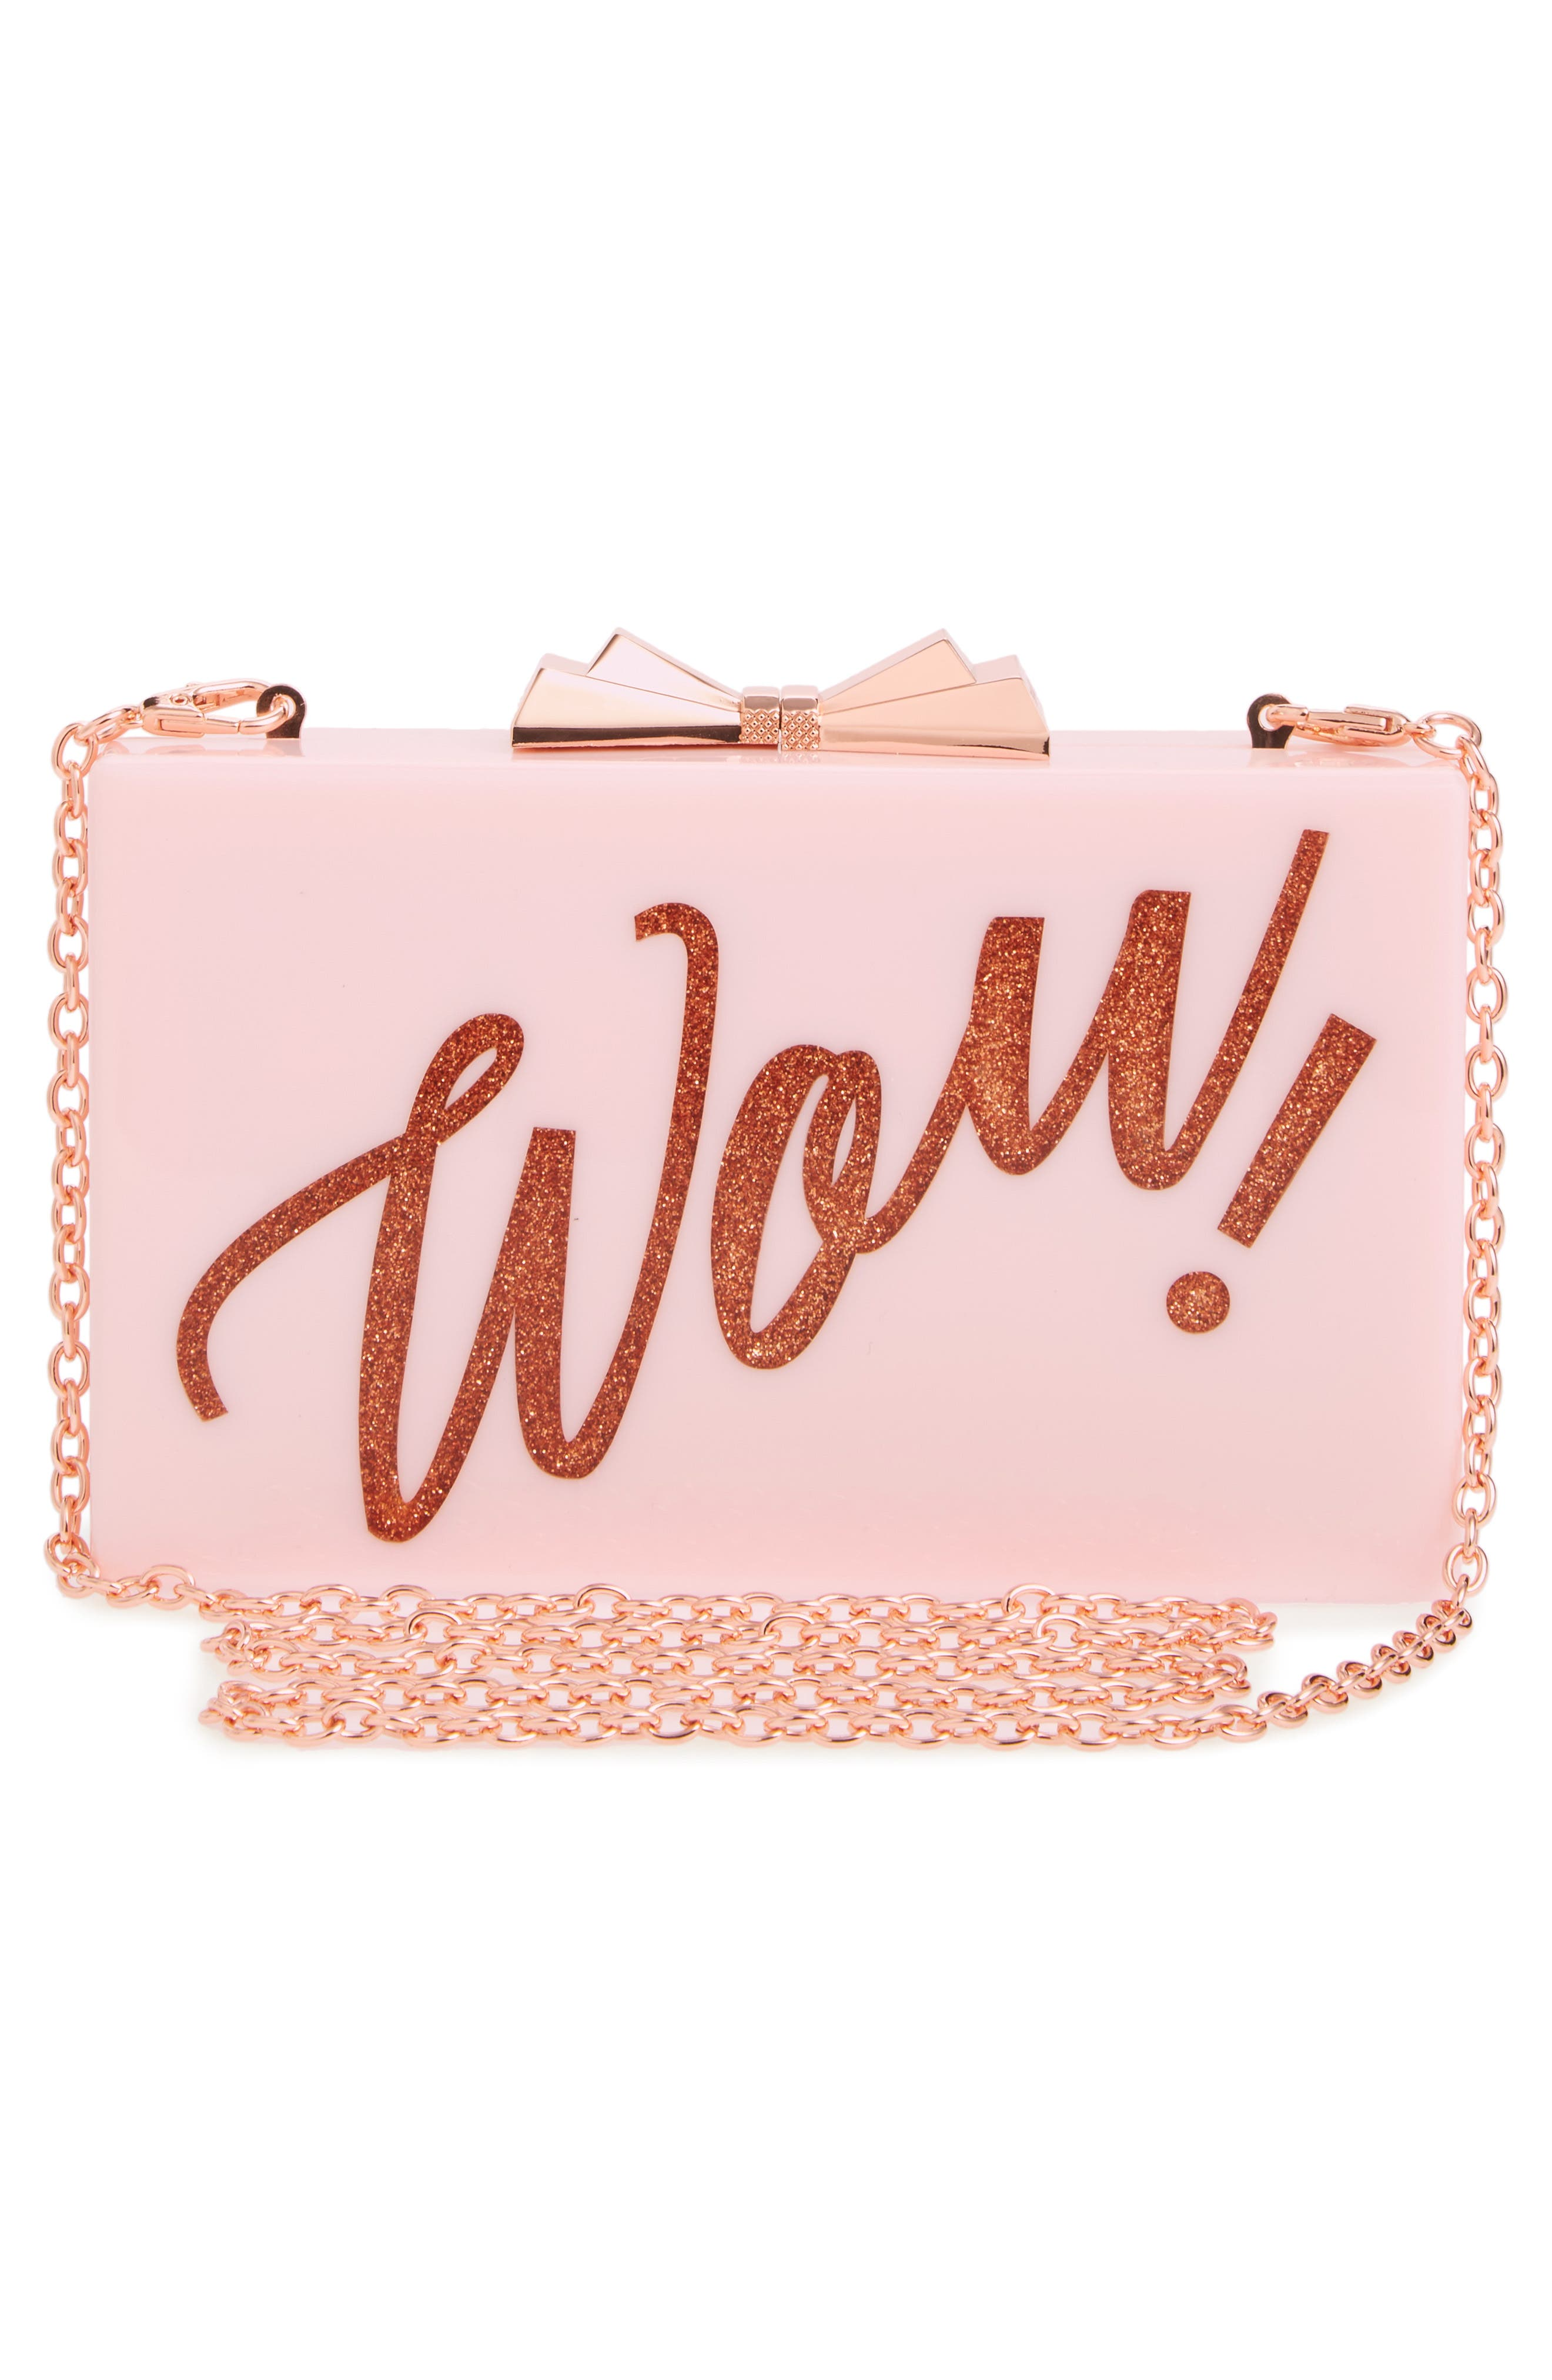 Stecy Wow Clutch,                             Alternate thumbnail 3, color,                             530